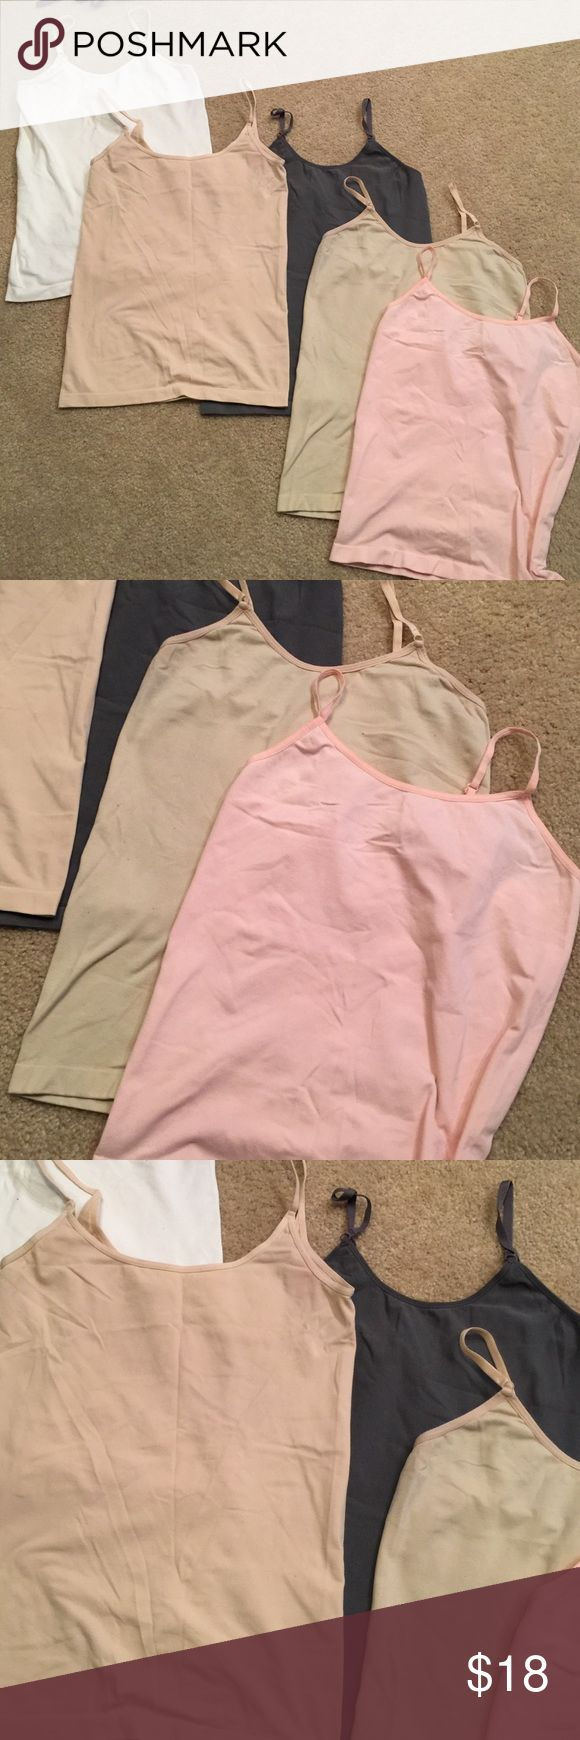 Cami top bundle 5 cami tops. Random brands. Two beige, 1 white, 1 slate grey and 1 baby pink. Used condition. Tops Camisoles